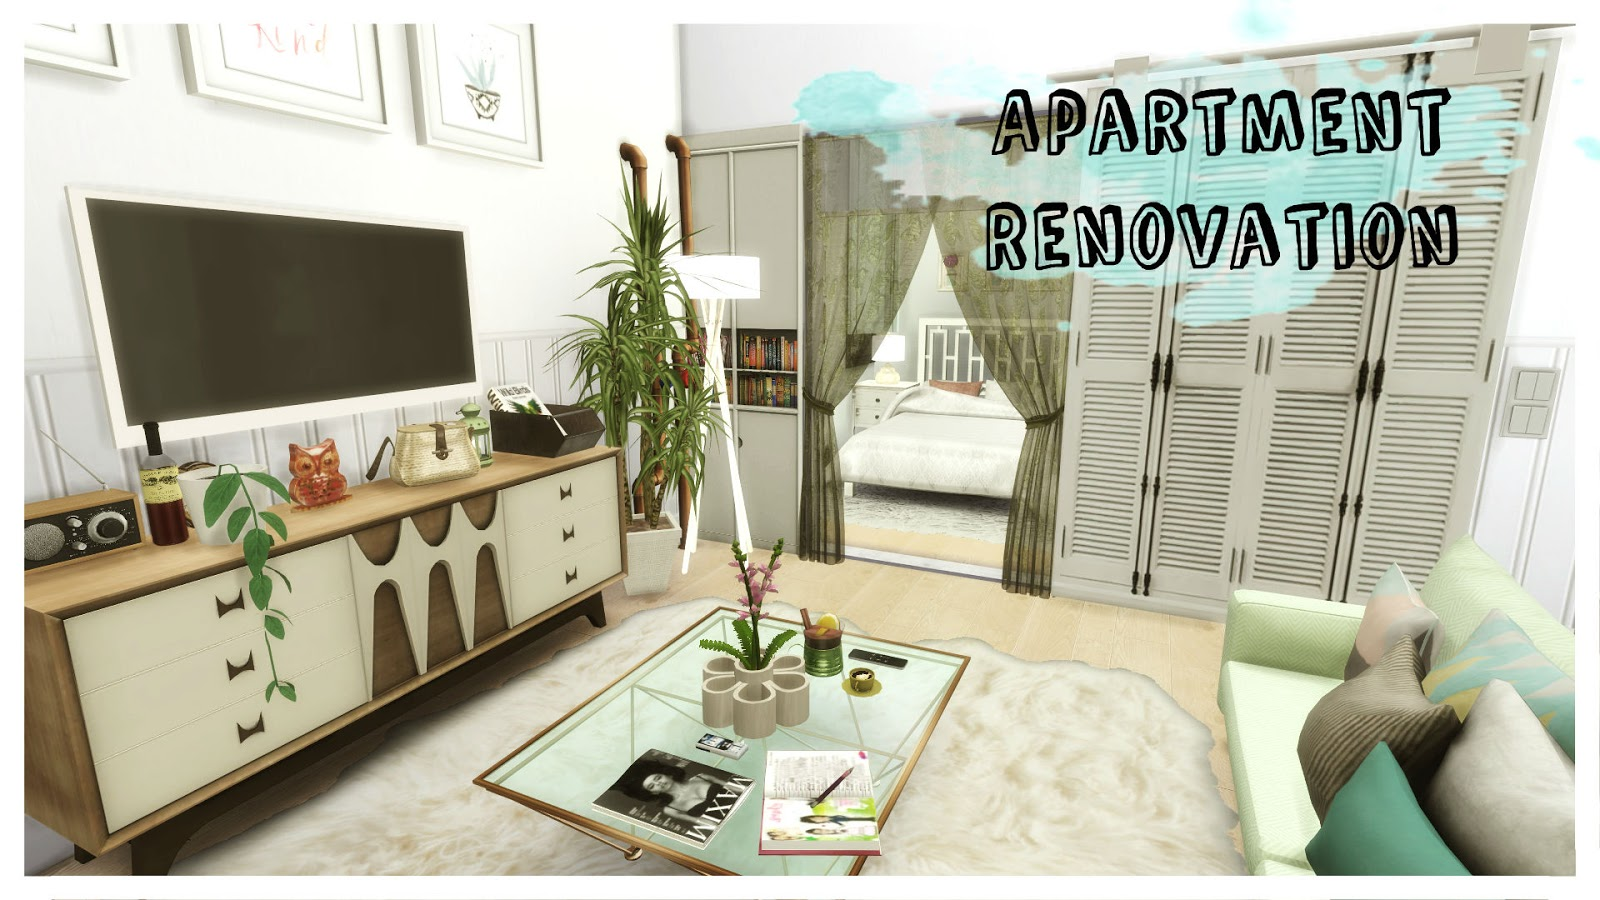 Sims 4 apartment renovation ii art district house mods for download dinha - Apartment renovation ideas ...